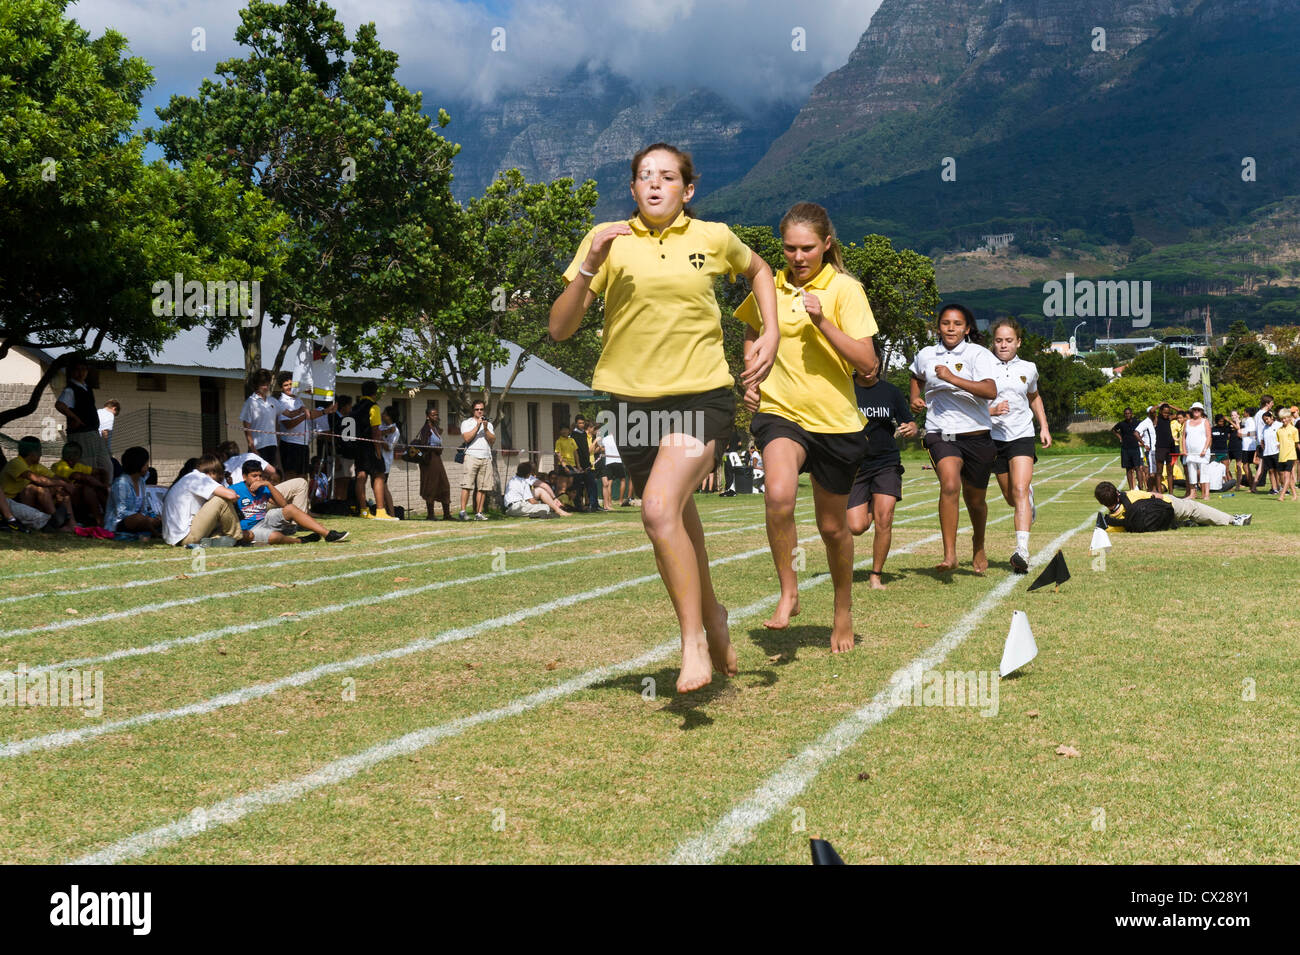 Running competition at sports day of St George's School, Cape Town, South Africa - Stock Image